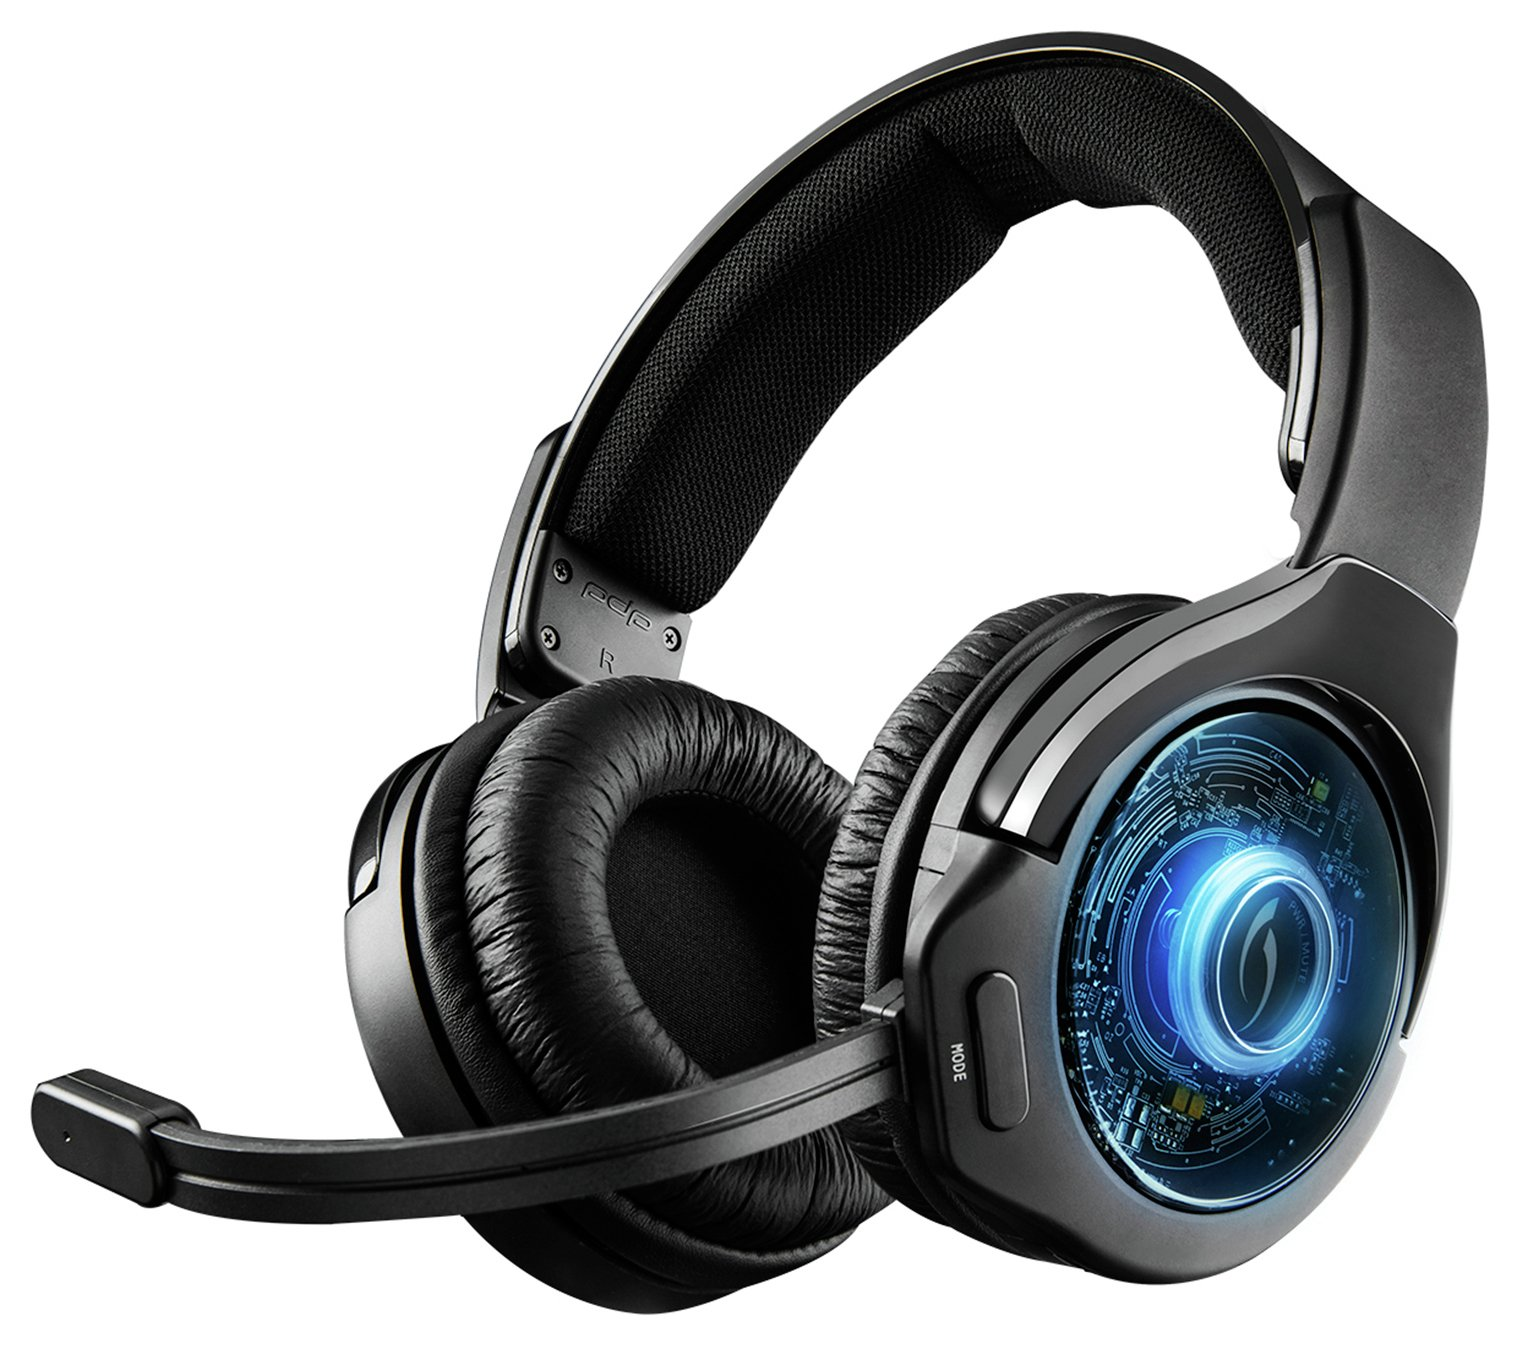 Compare prices for Afterglow Ag9 Wireless Headset